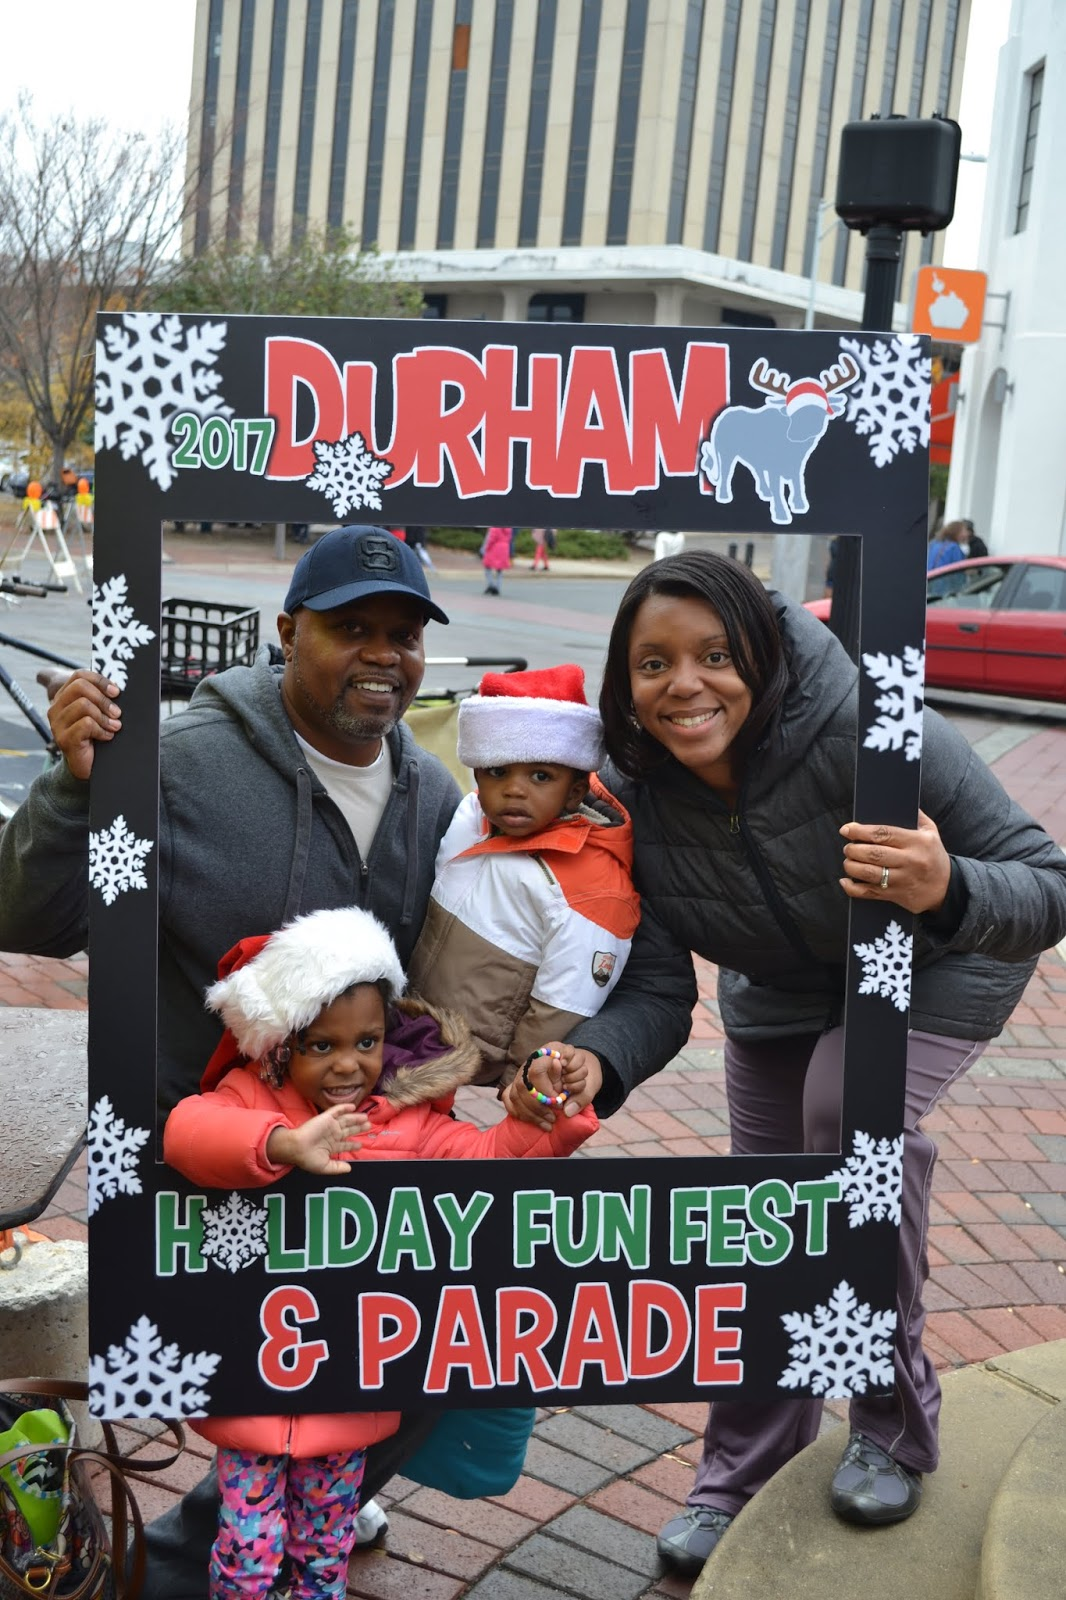 Celebrate The Holidays At The Durham Holiday Parade And Fun Fest